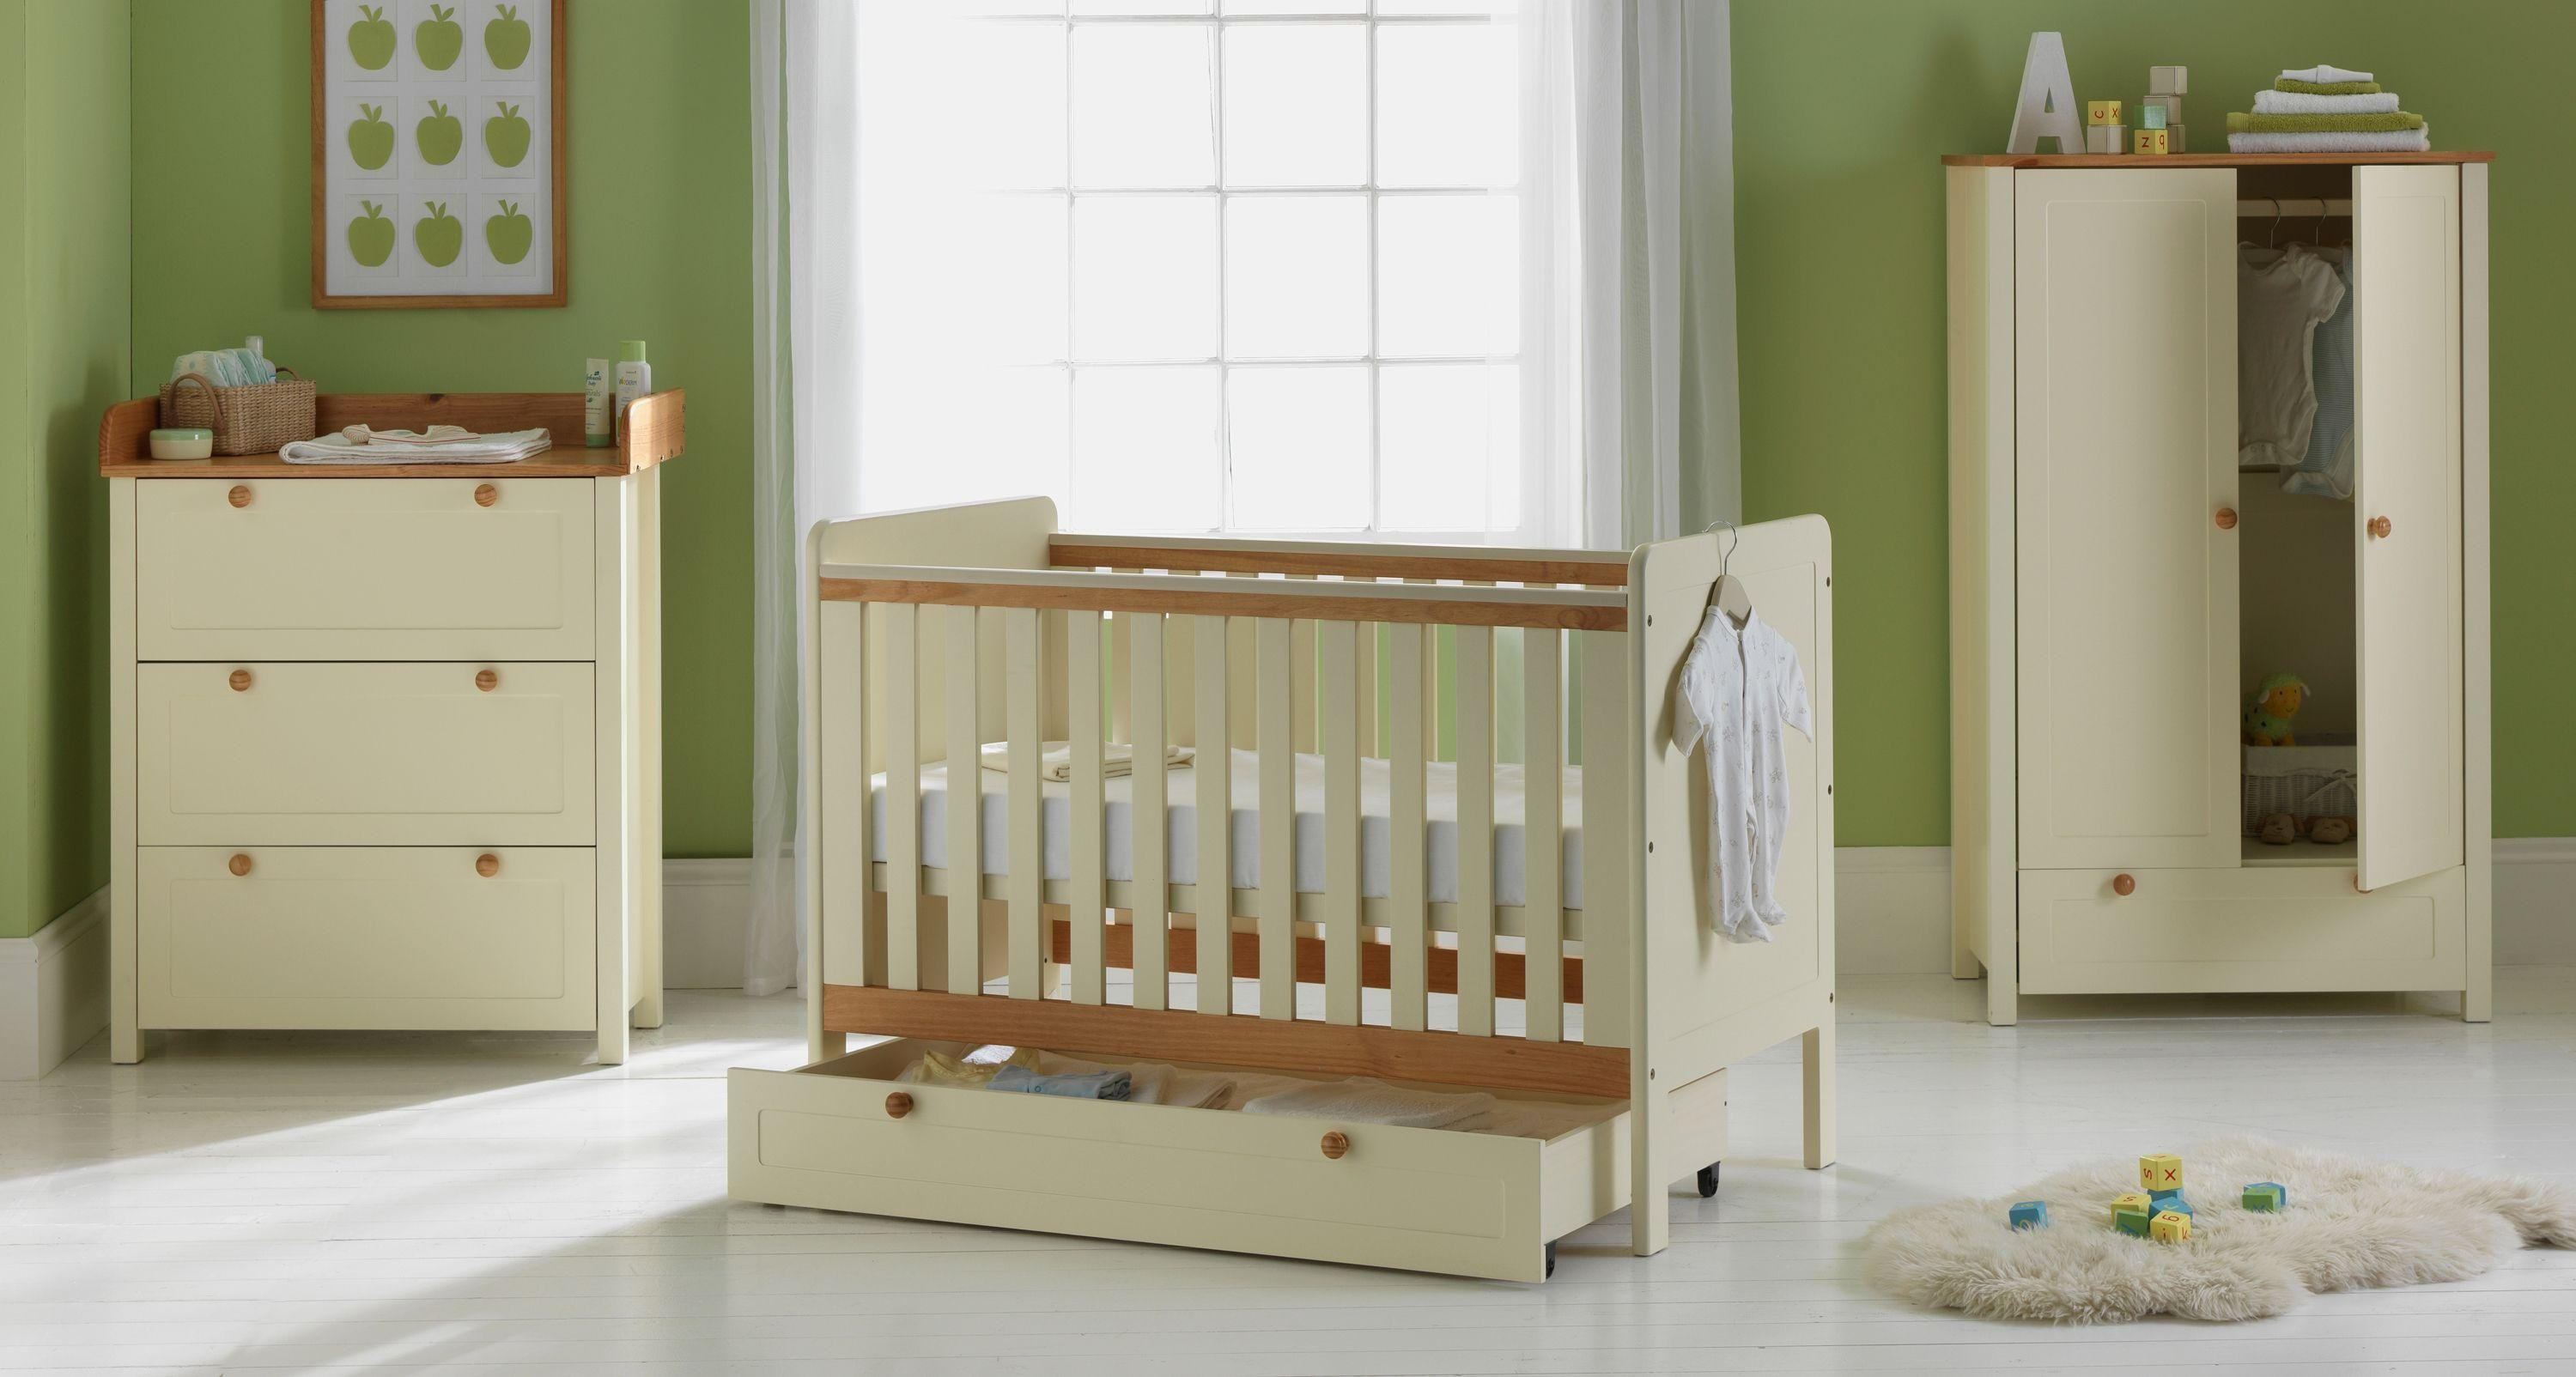 Awesome Classic Two Tone 5 Piece Nursery Furniture Set